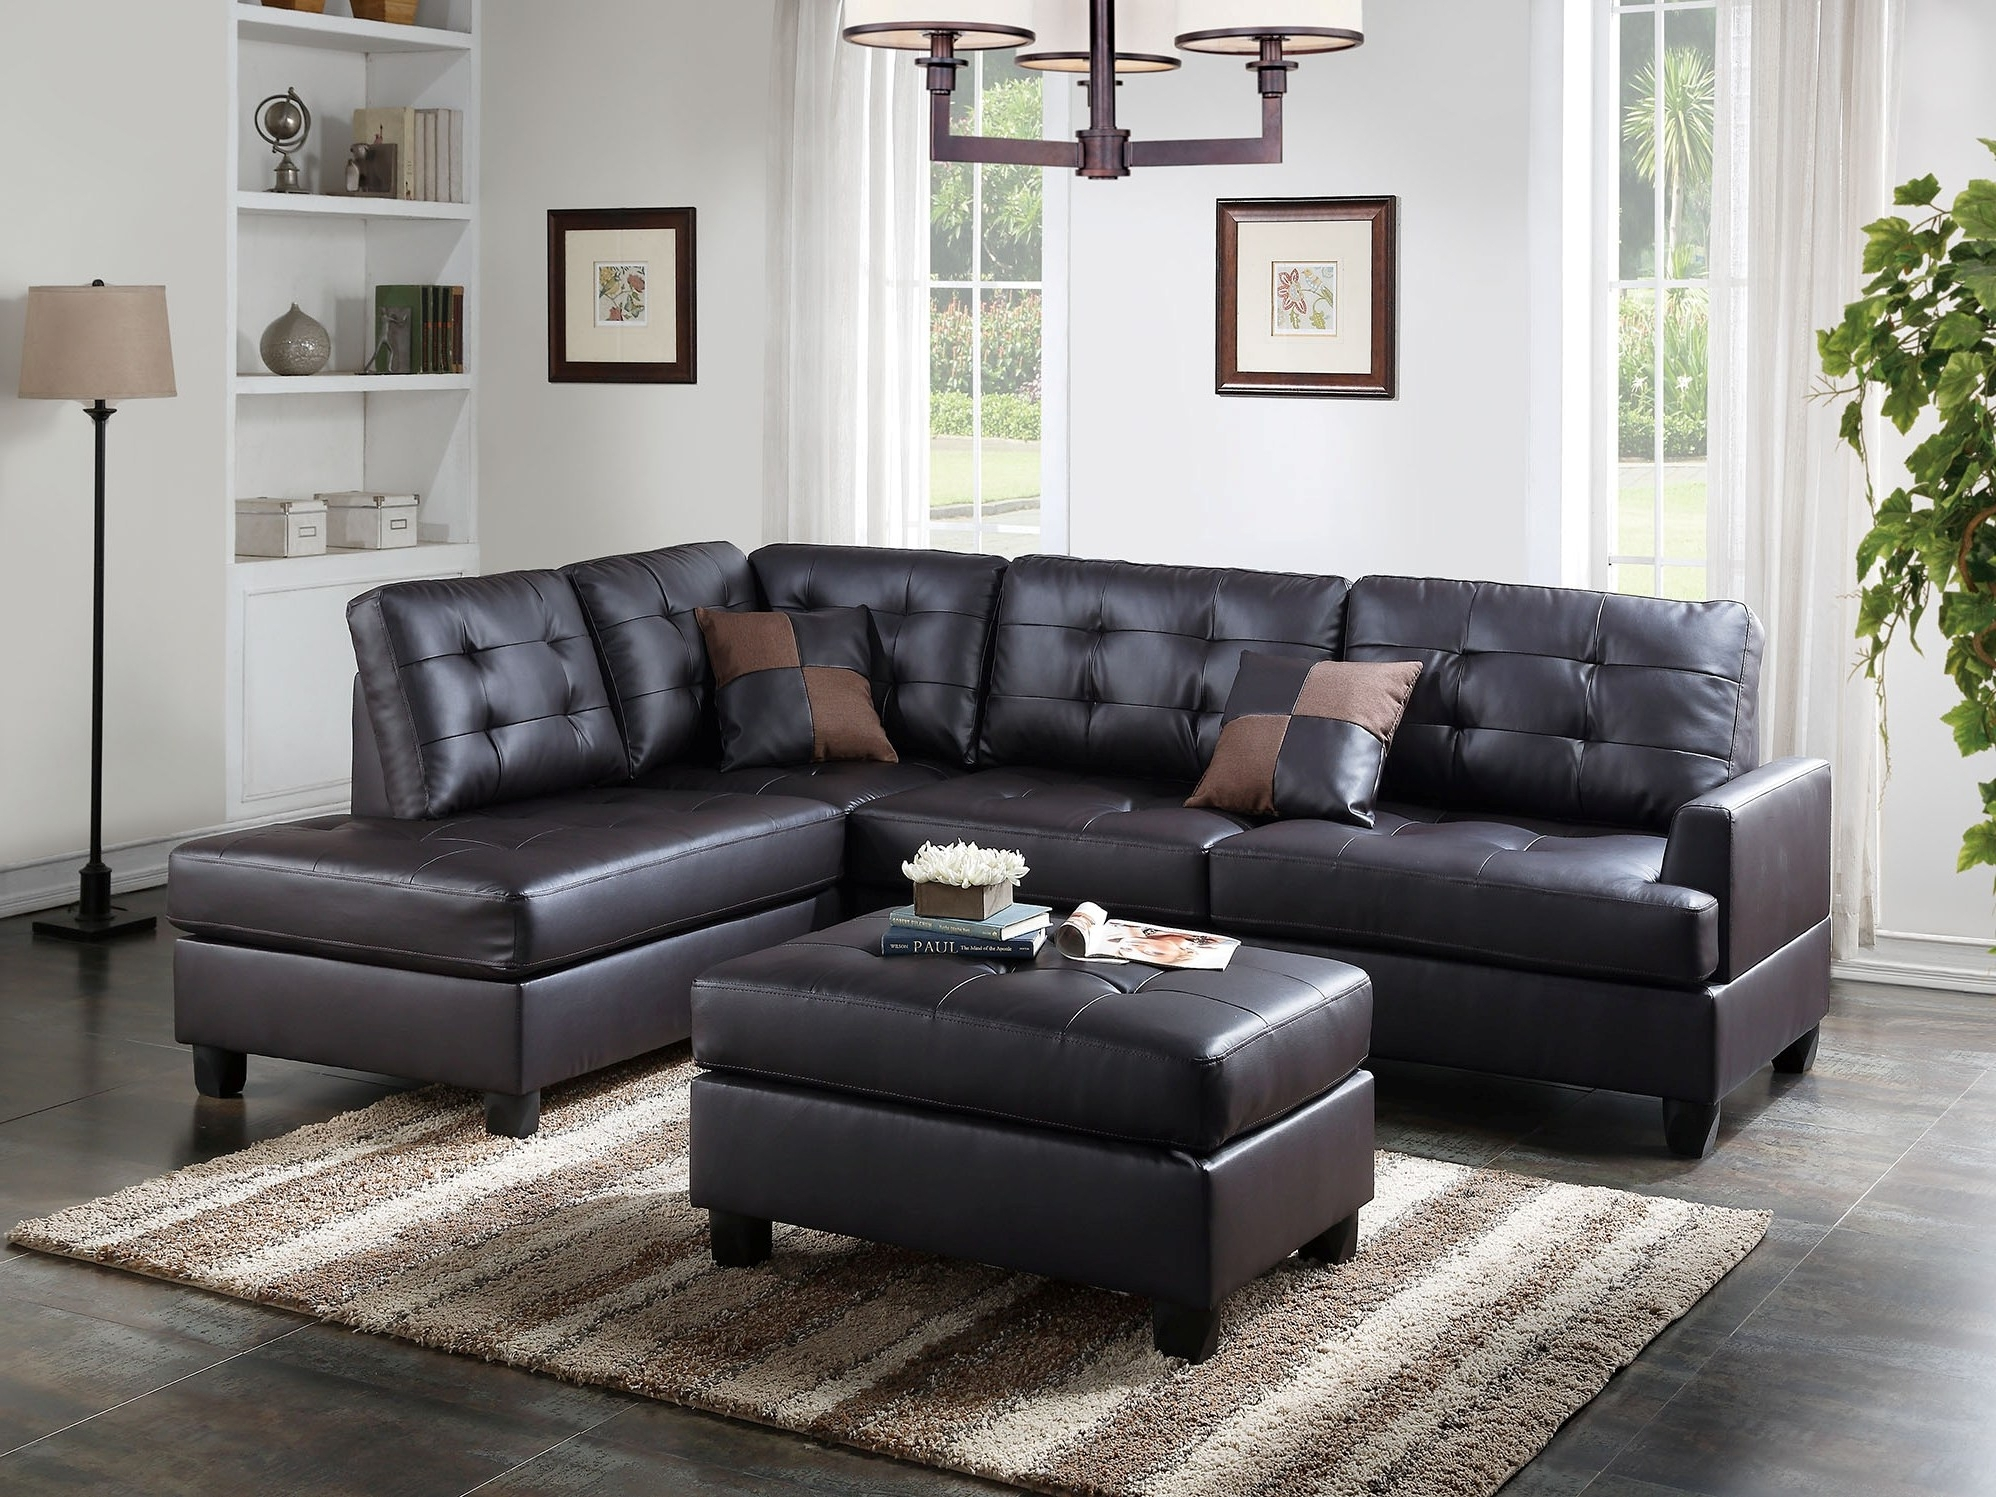 Pconal Sofa With Chaise Storage And Ottoman 3Pcs Set Carpenter Throughout Fashionable Kanes Sectional Sofas (View 4 of 20)